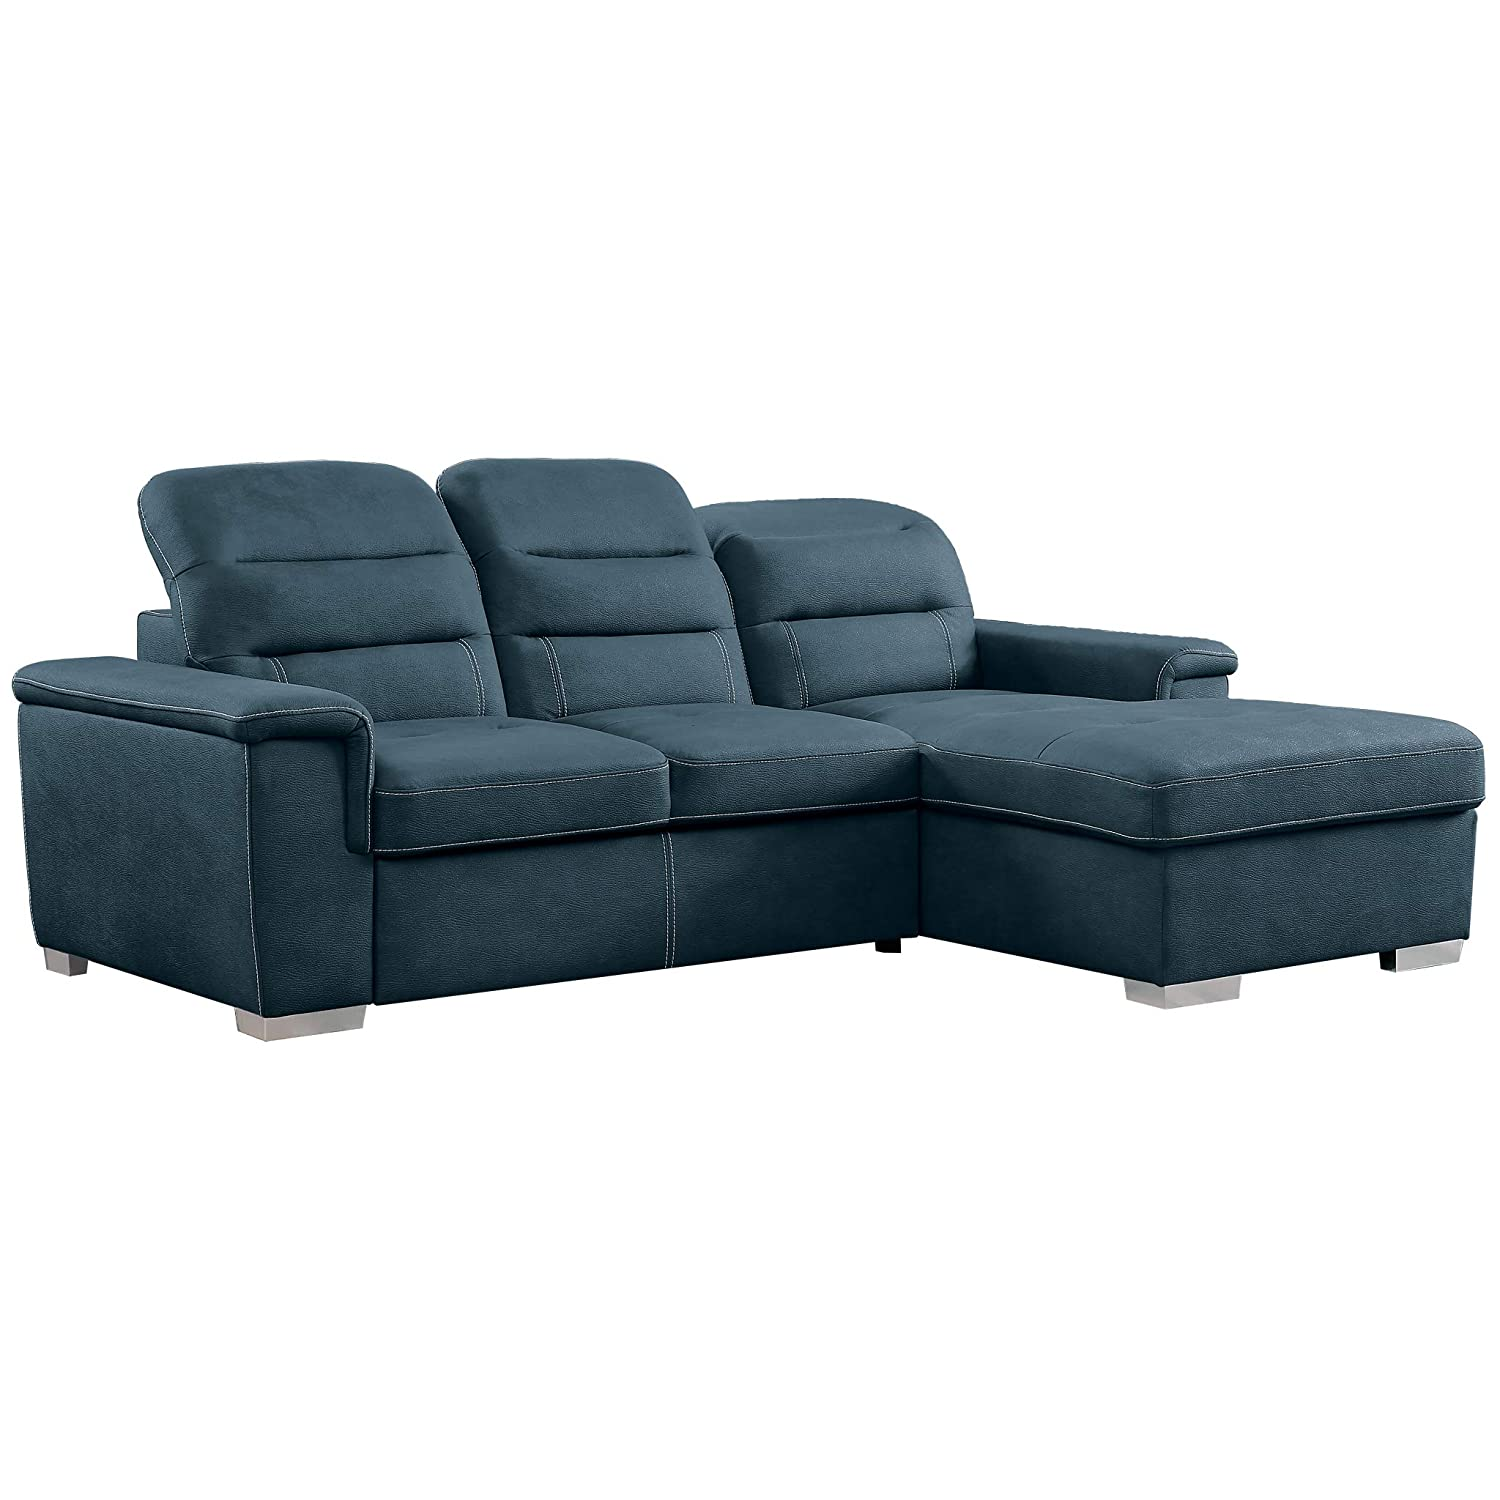 Homelegance 9808 Sleeper Sectional Sofa with Storage, Blue